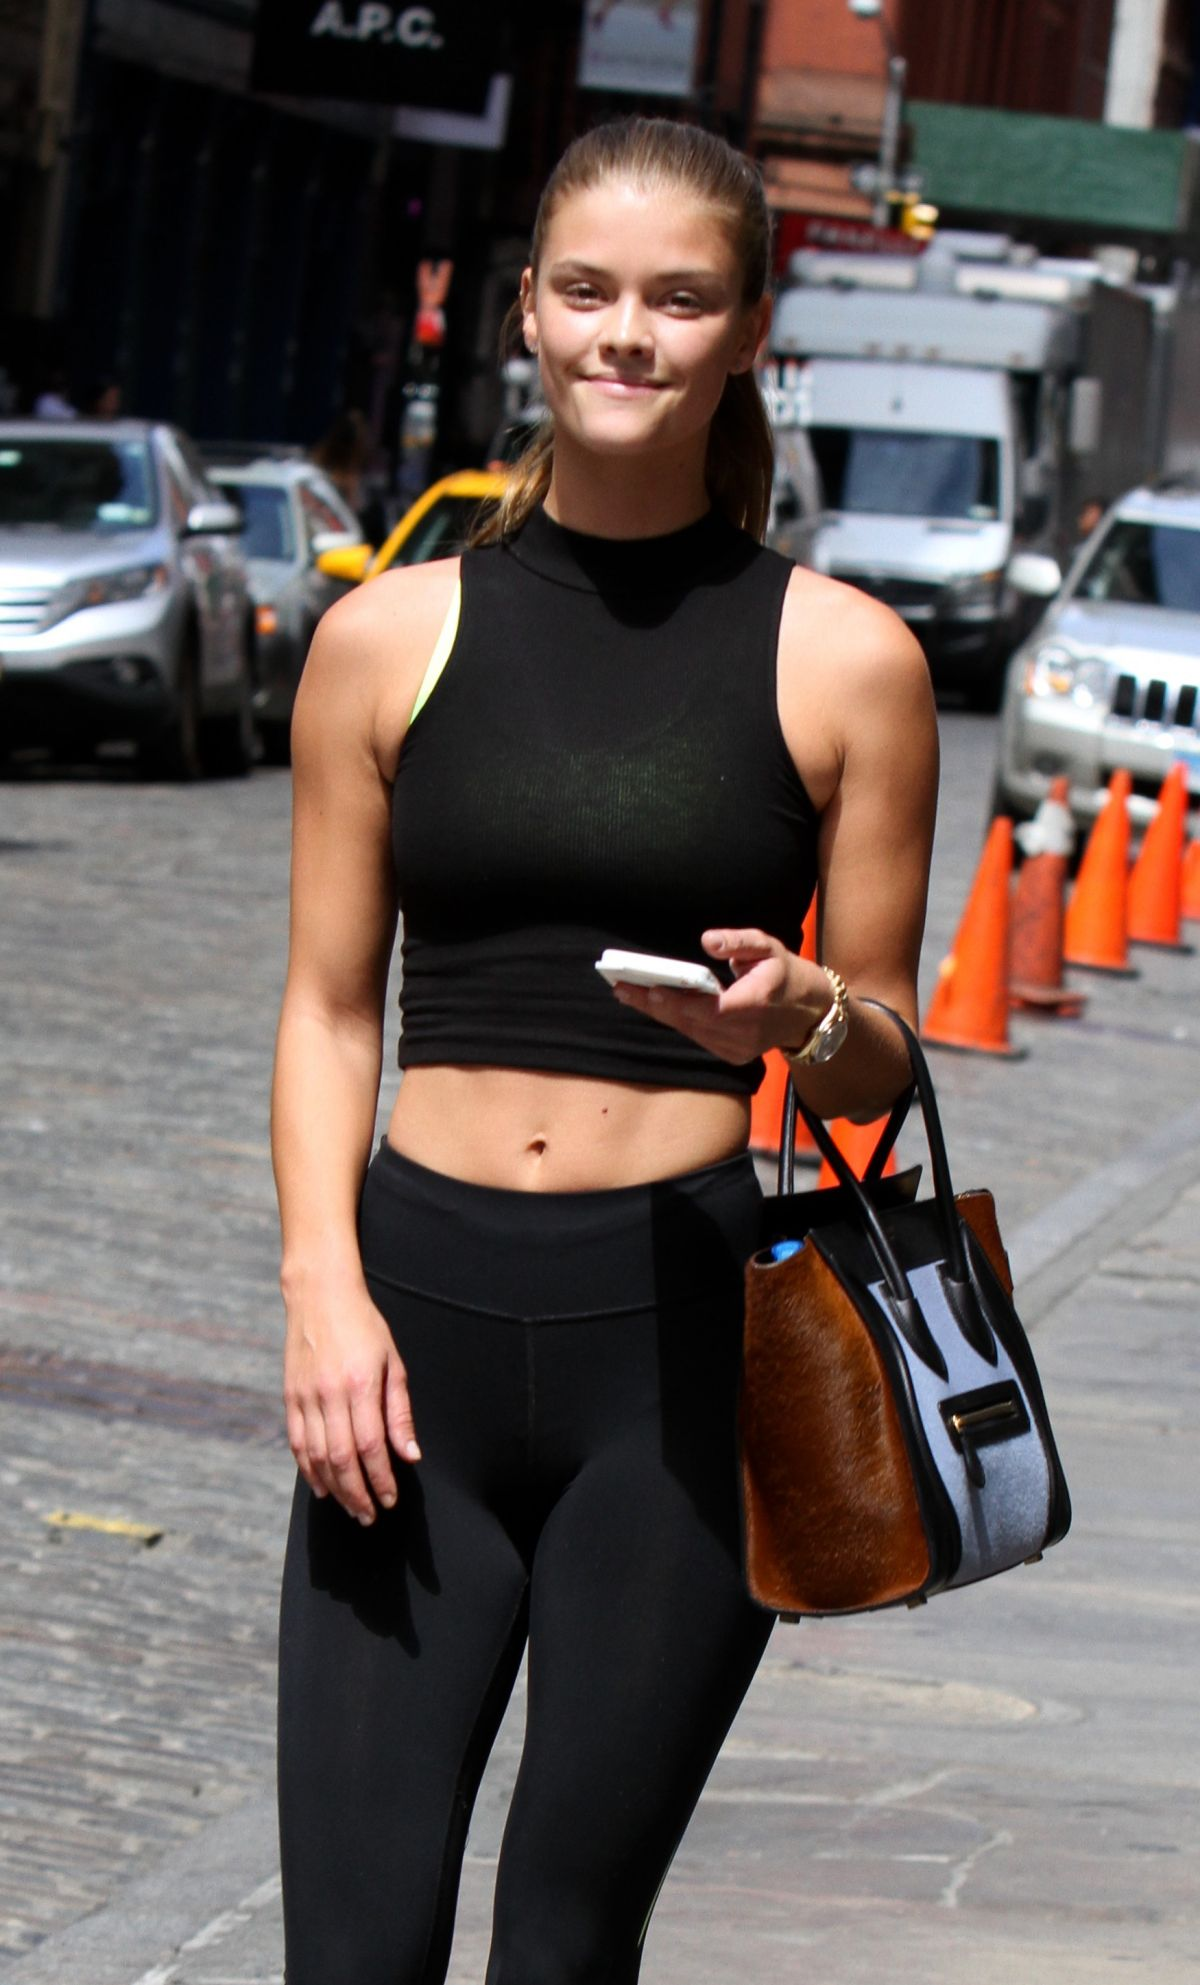 NINA AGDAL in Leggings heading to a Gym in Manhattan 08/06/2015